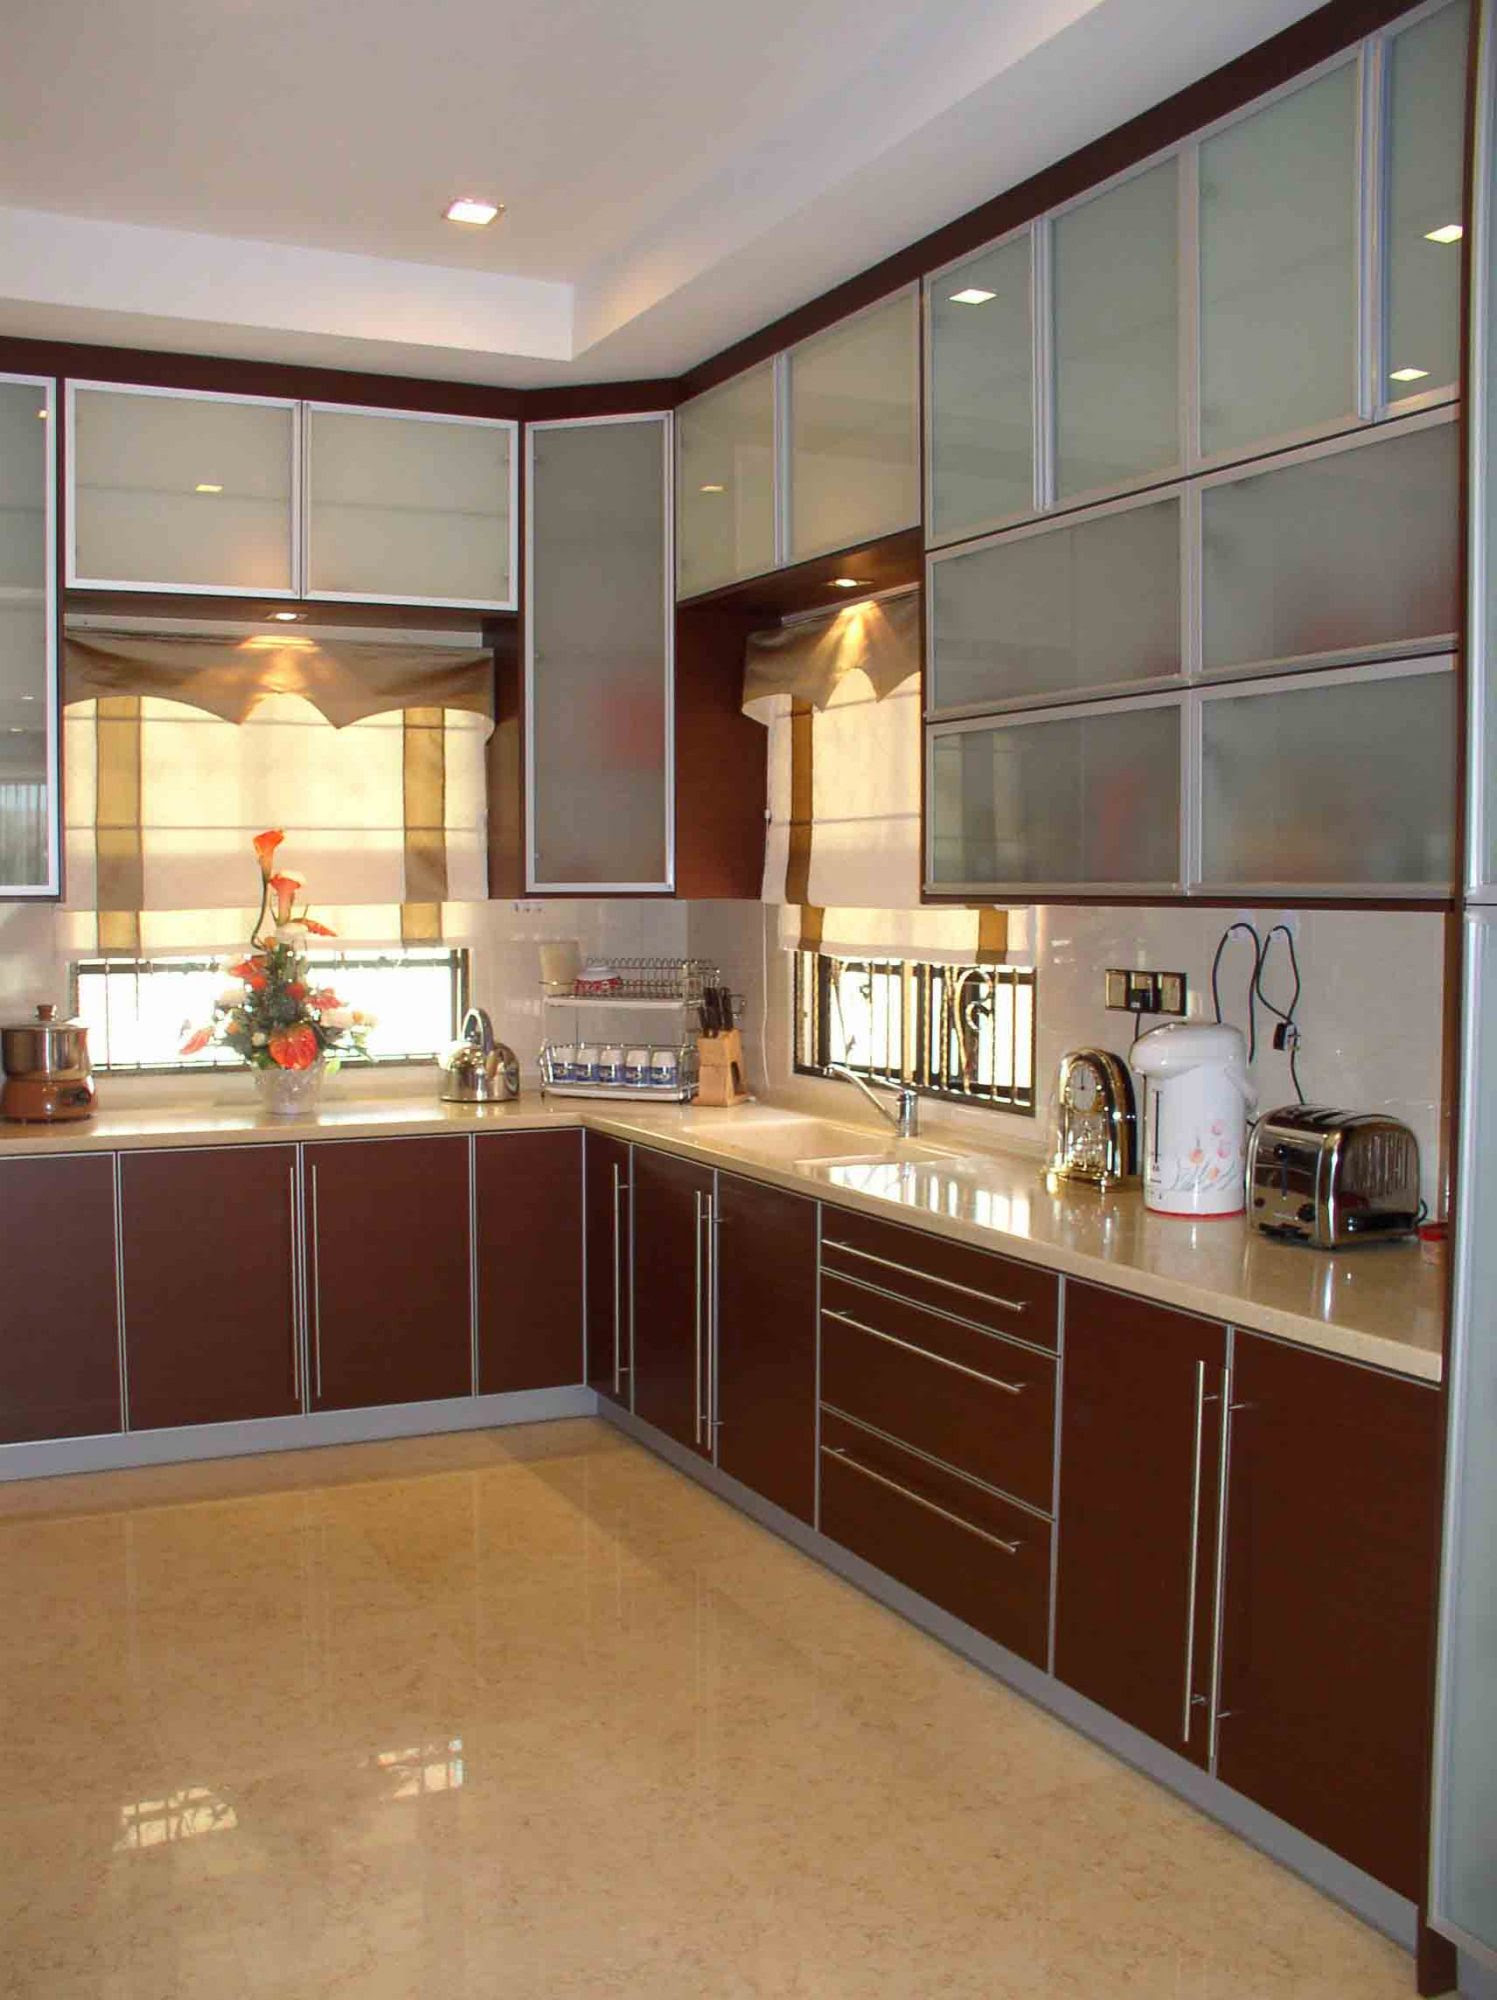 20 Popular Kitchen Cabinet Designs in Malaysia - Recommend ...